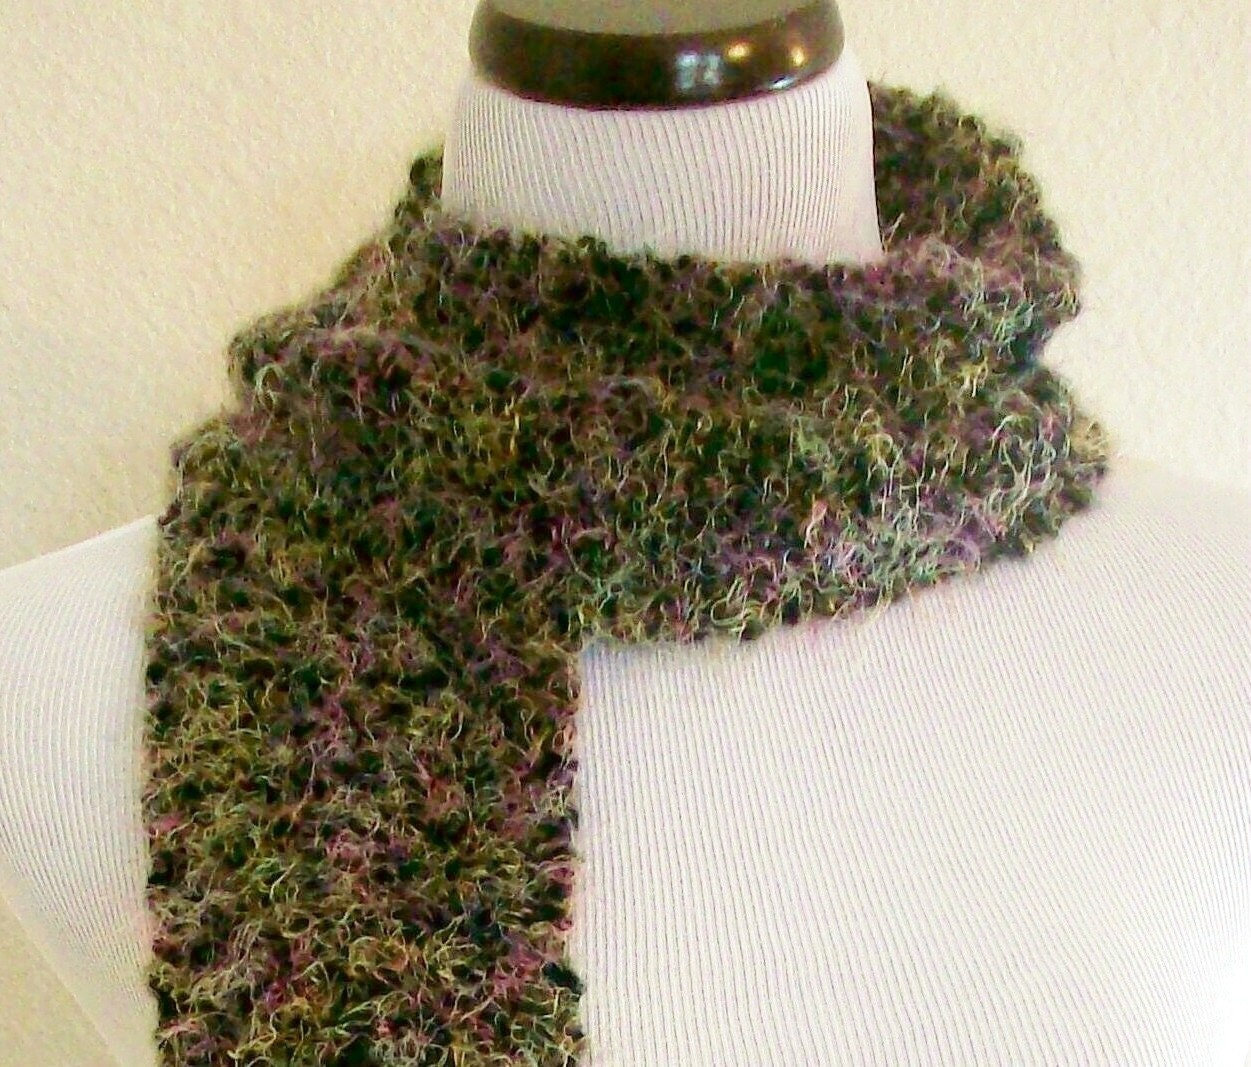 Multi Colored Scarf Knitting Pattern : Black and Multi-Colored Knit Scarf by Eclectasie on Etsy